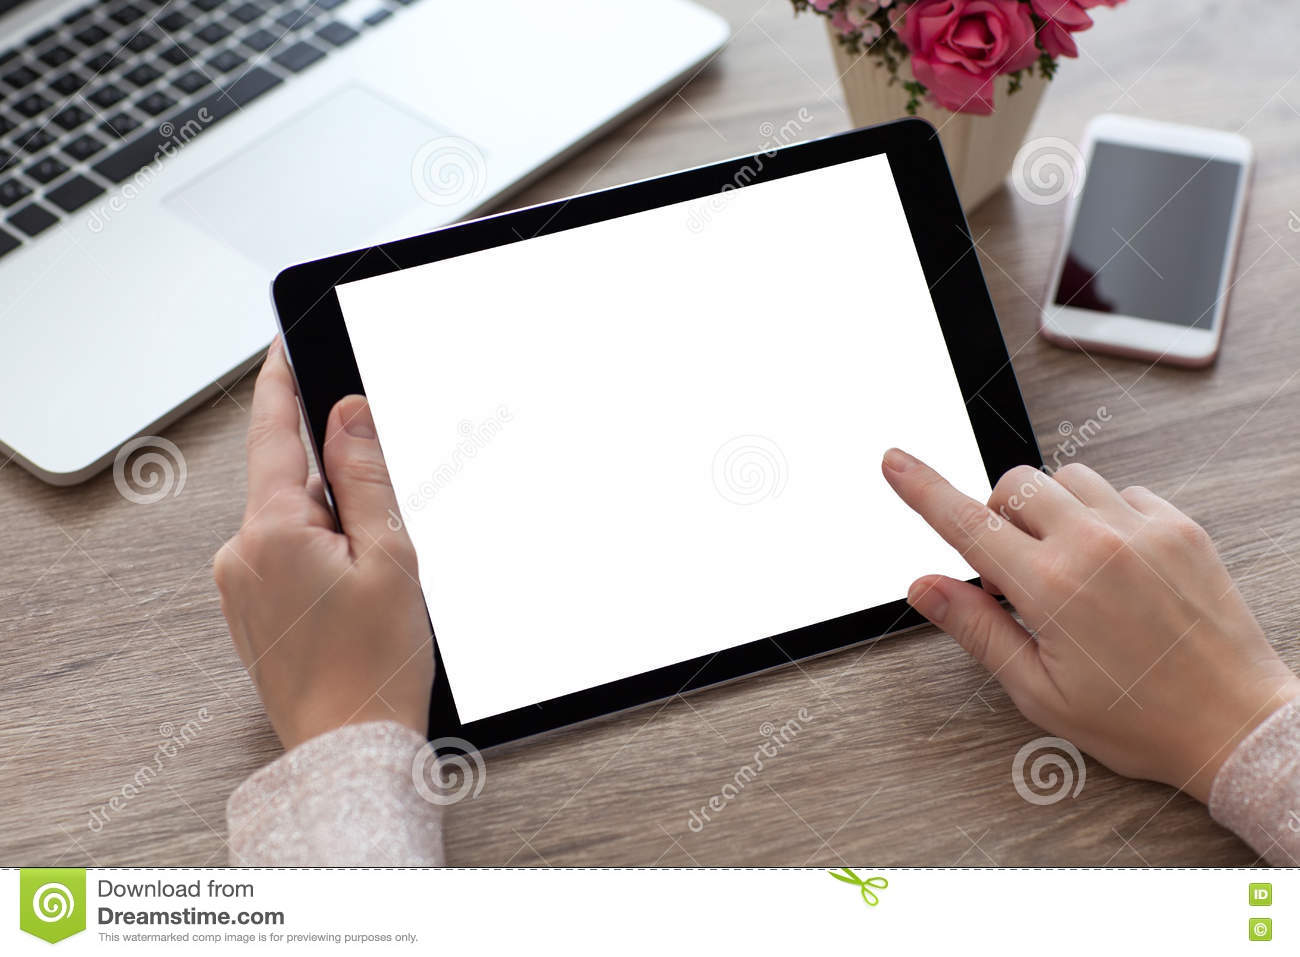 Woman hands holding tablet PC computer with isolated screen